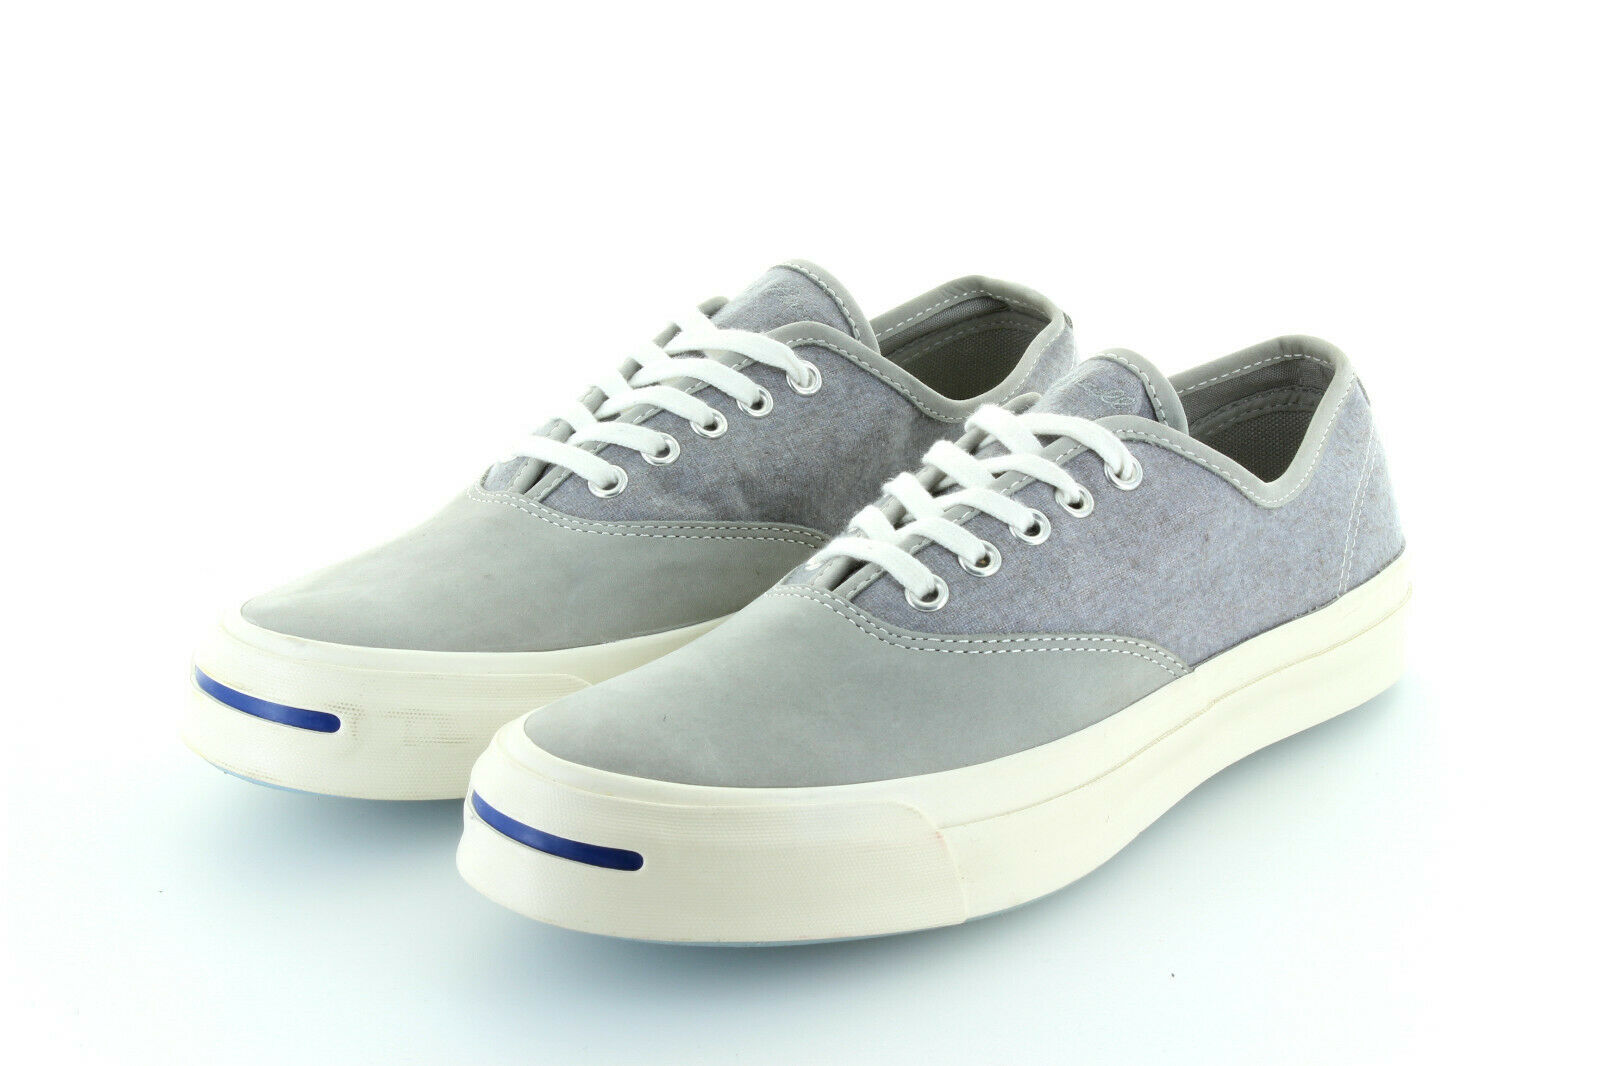 Converse Jack Purcell Signature Ox gris Dolphin leather textile 42,5 US 9